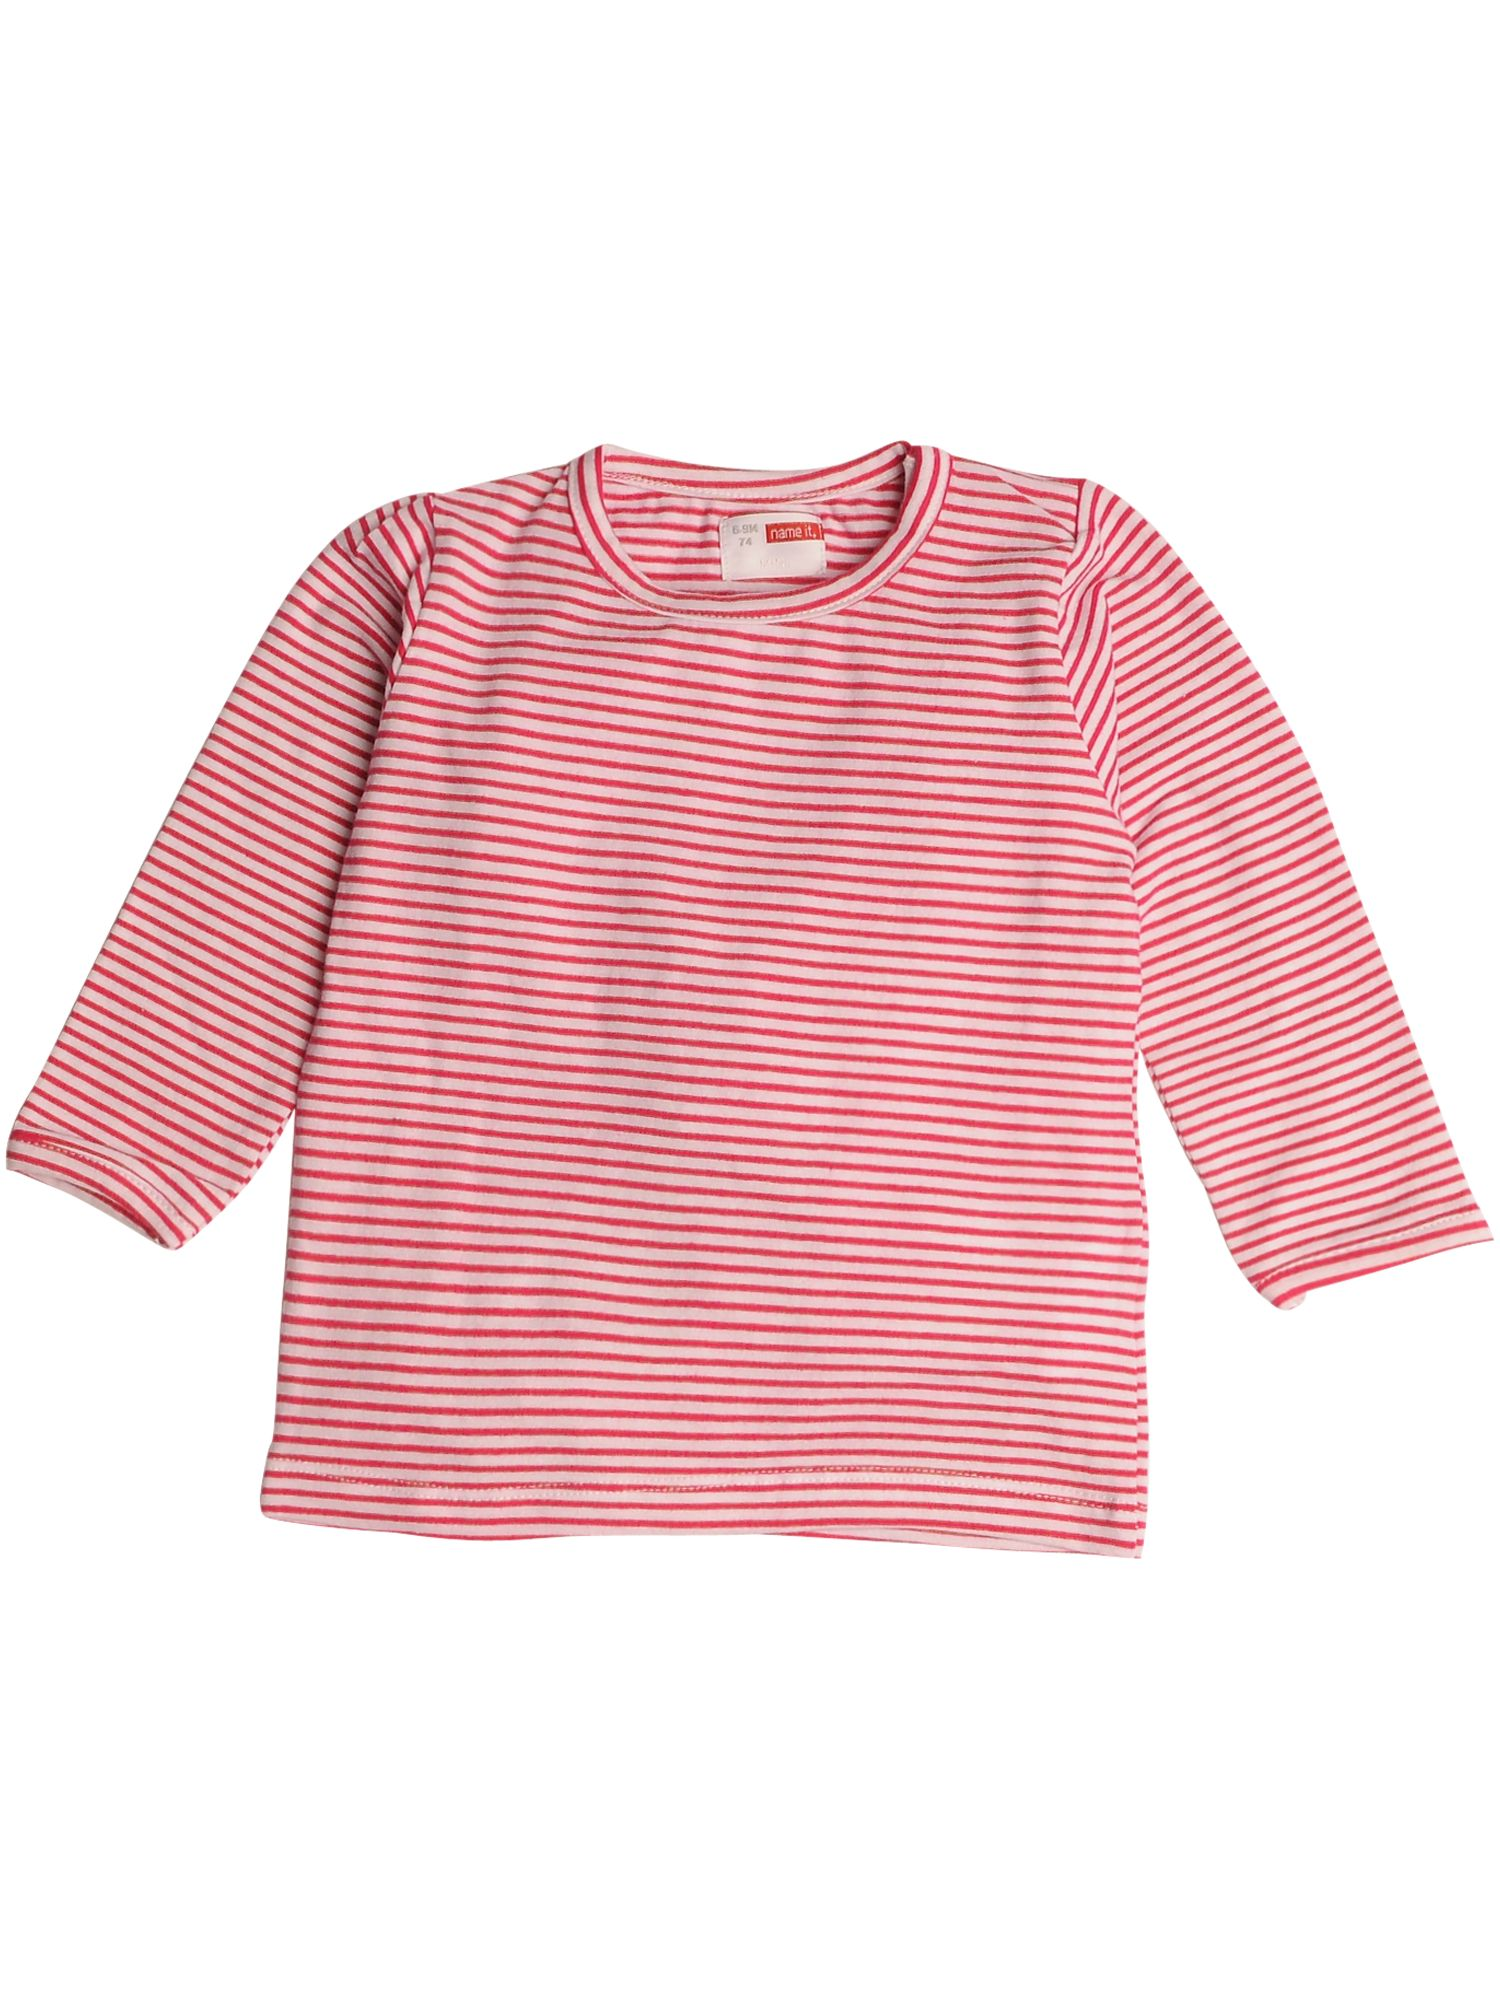 name it Long-sleeved striped T-shirt - Pink `6 mths product image